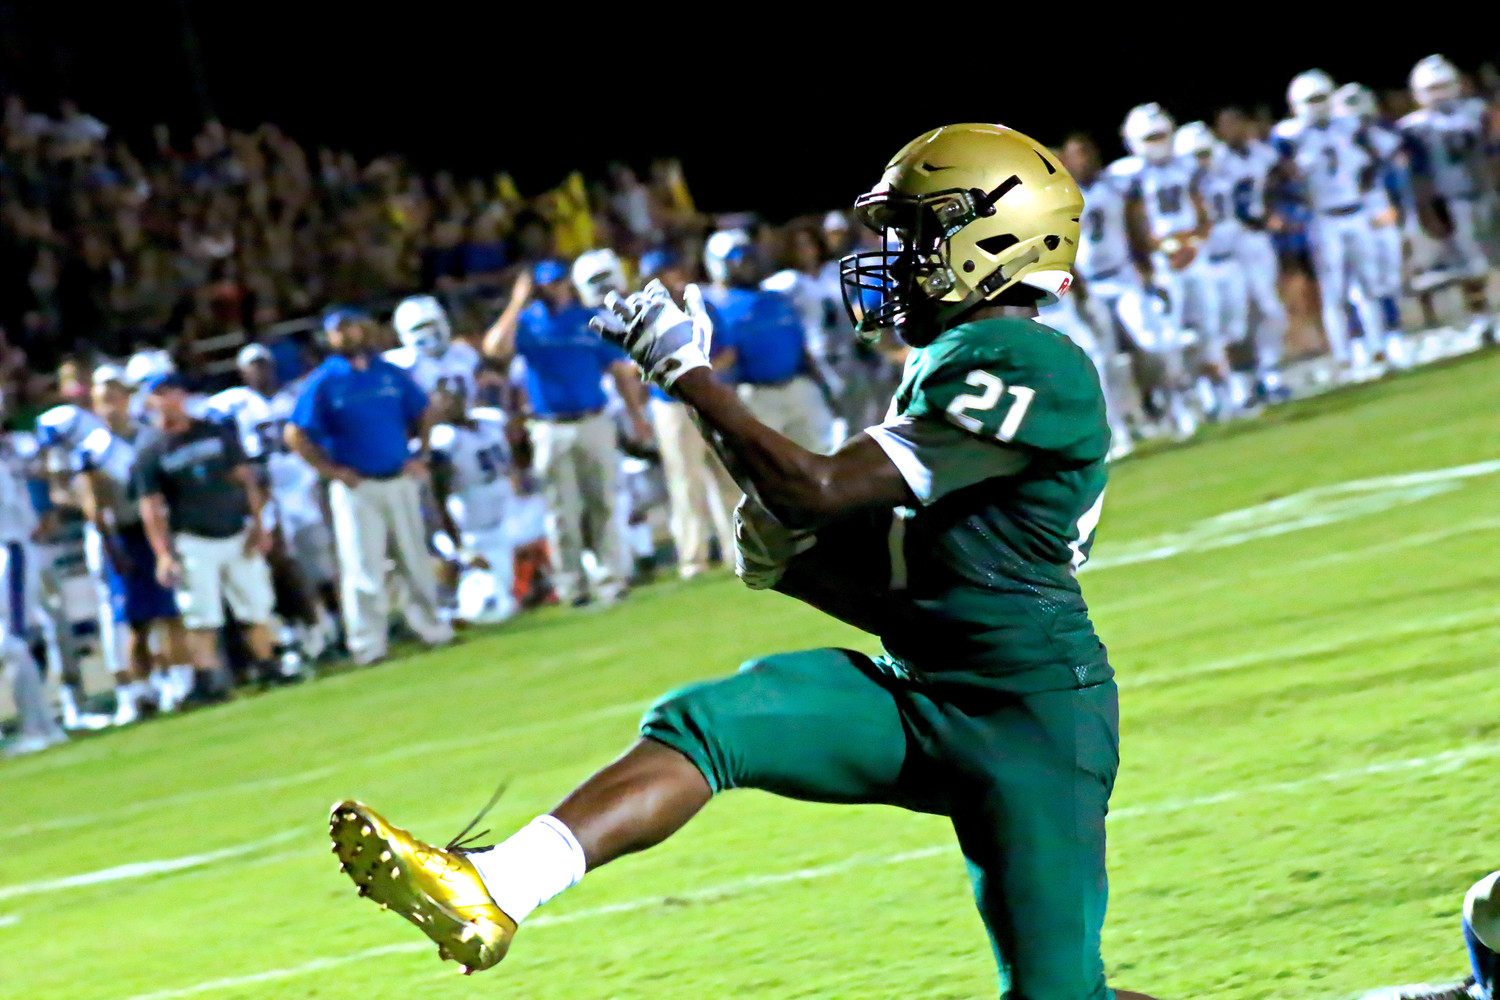 Returning senior tailback Anfernee McCaskill caused fits for Clay defense with his outside sweeps getting yards including this high-stepping touchdown in the first half that put Fleming Island uip 21-7.